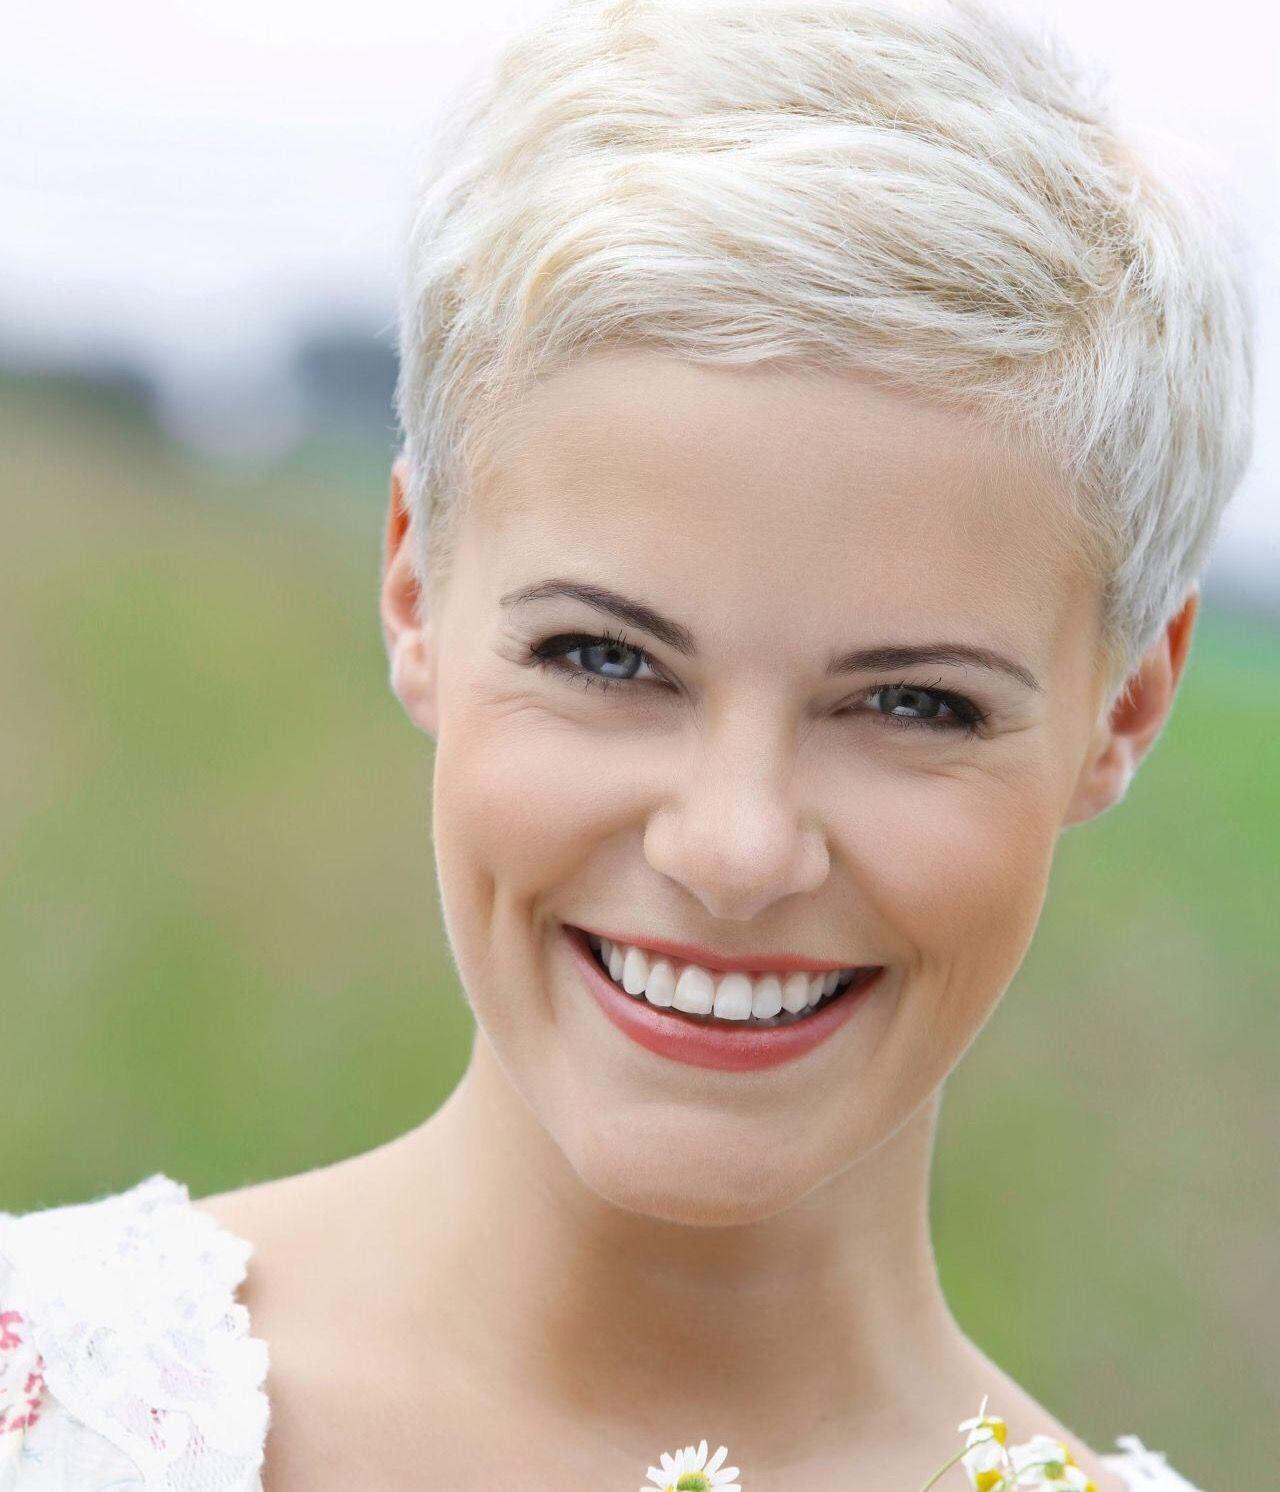 Pin by Christy Watts on It's Only Hair | Pinterest | Short hair, Hair cuts and Pixies